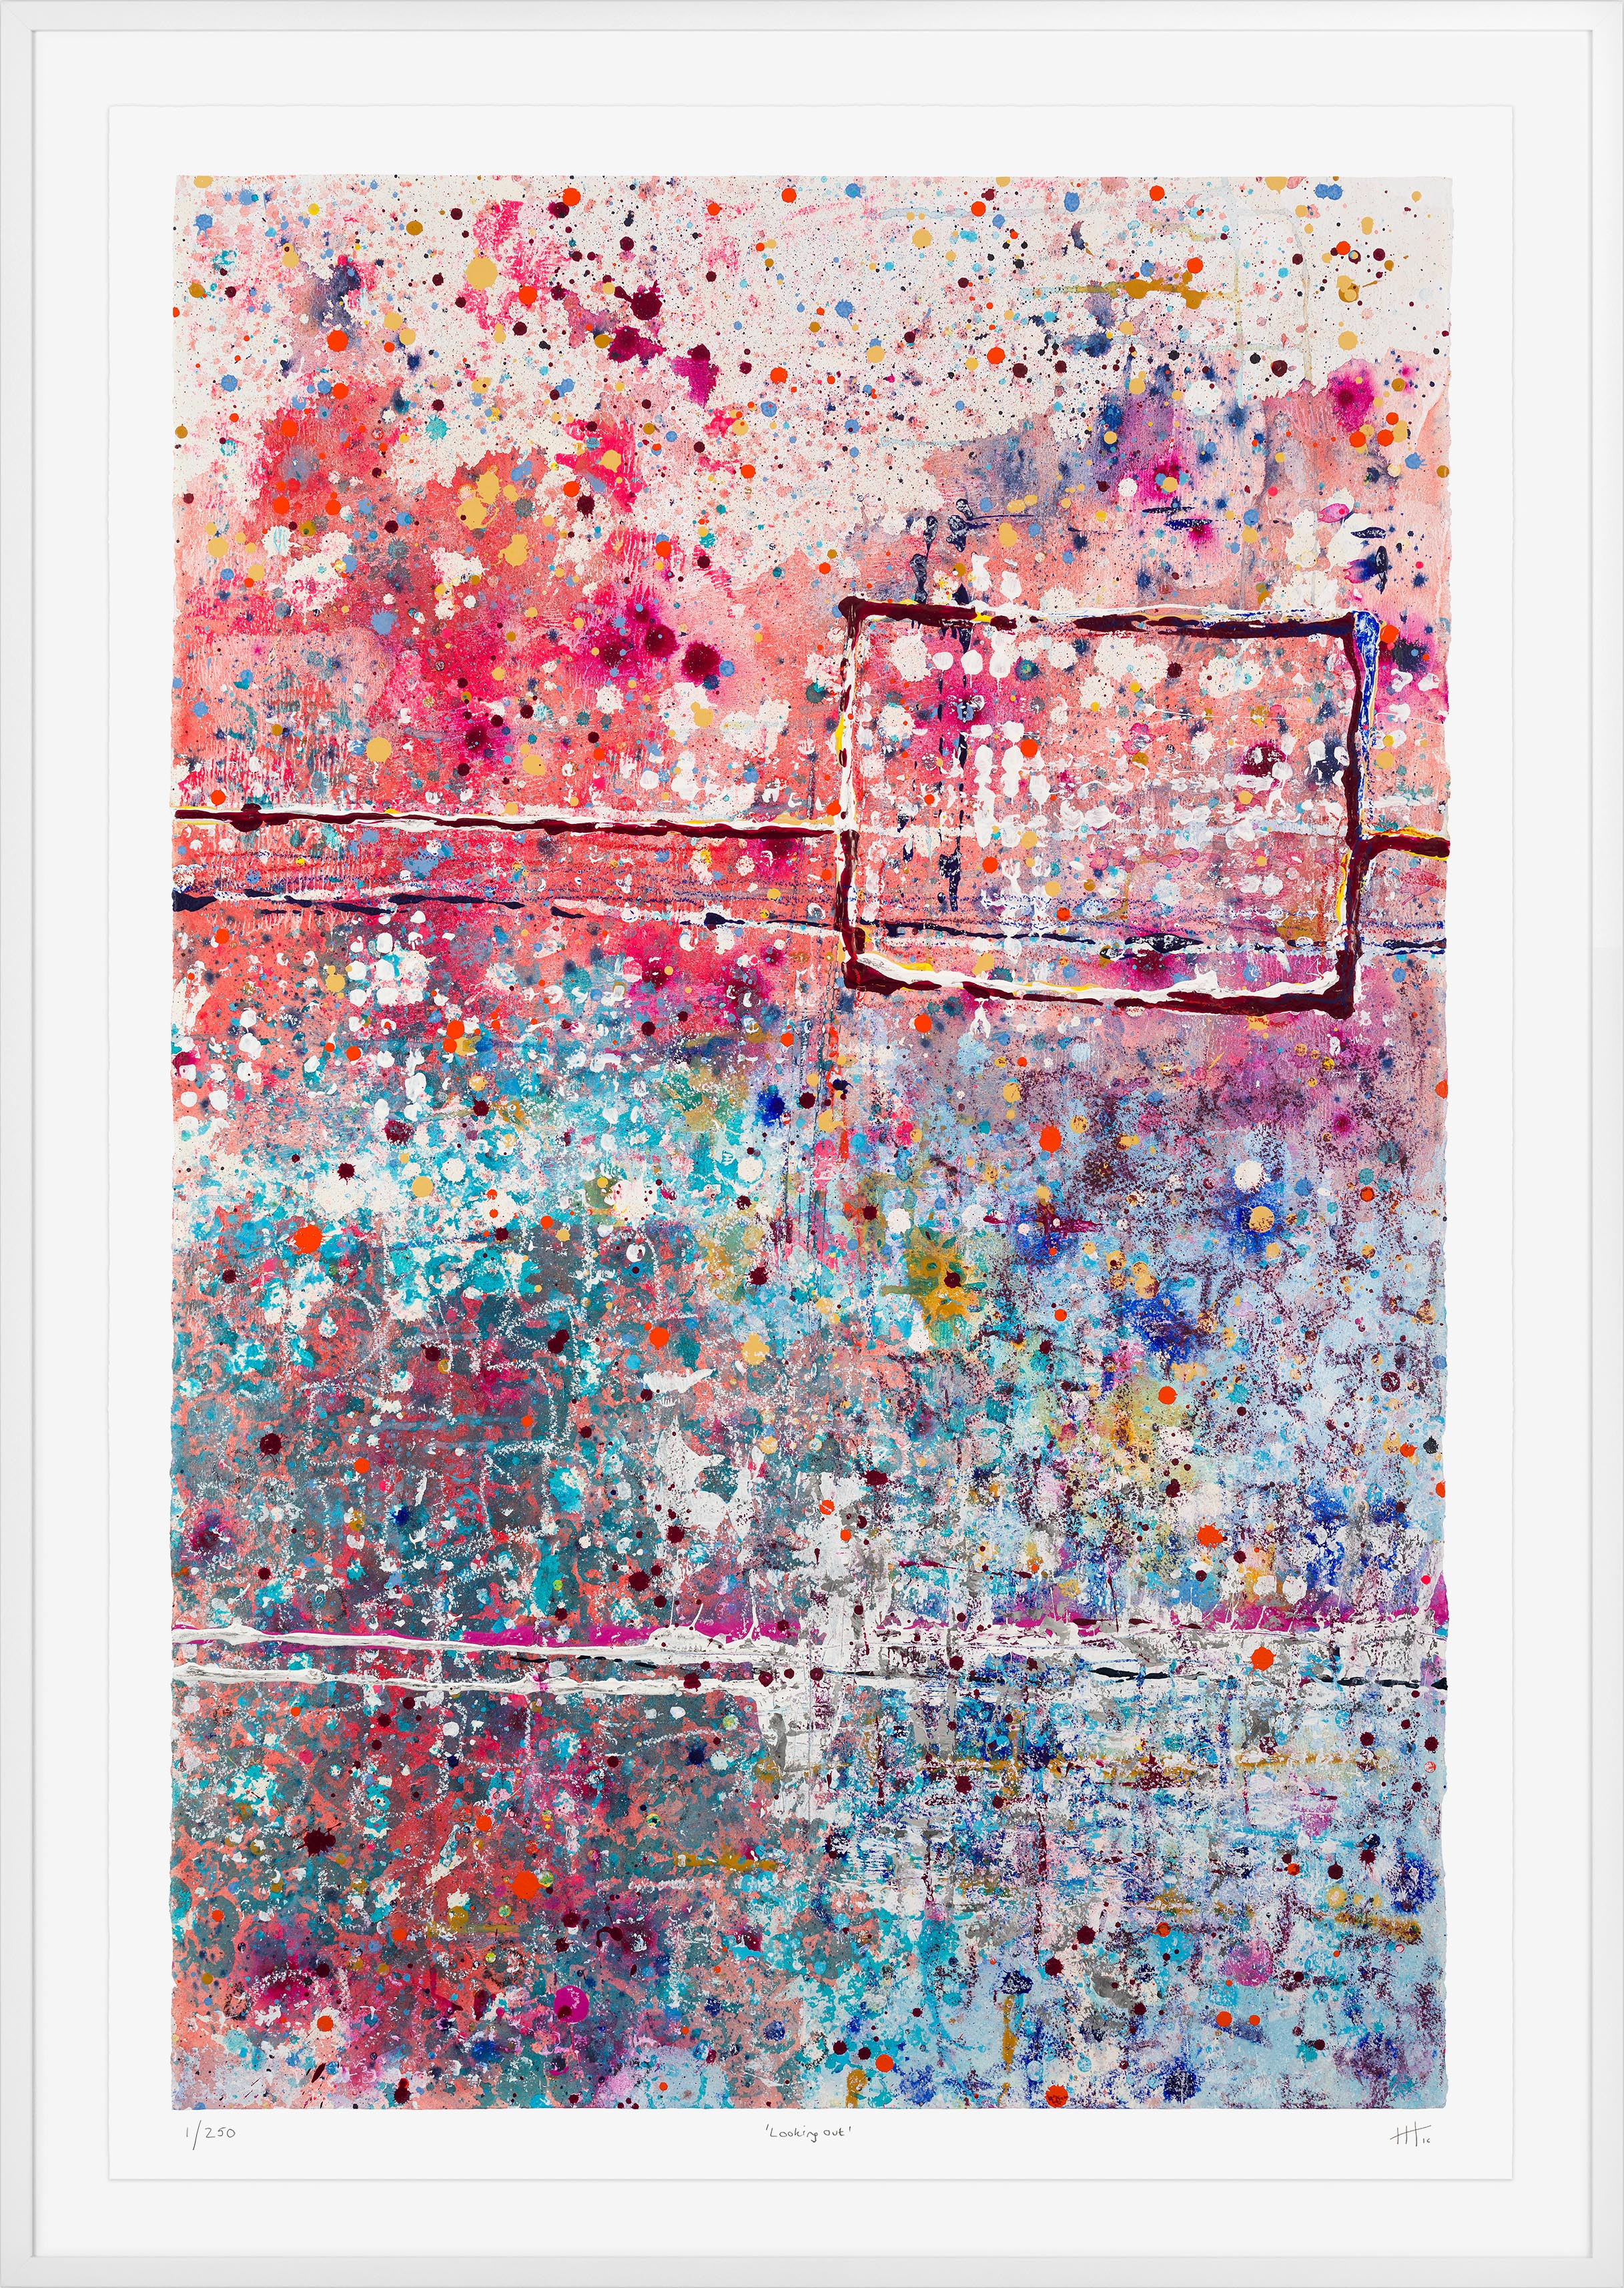 'Looking Out' LIMITED EDITION GICLEE PRINT / Edition of 250 Size: 105cm x 76cm (framed)  £475 (includes frame) / £300 unframed  purchase via    contact form